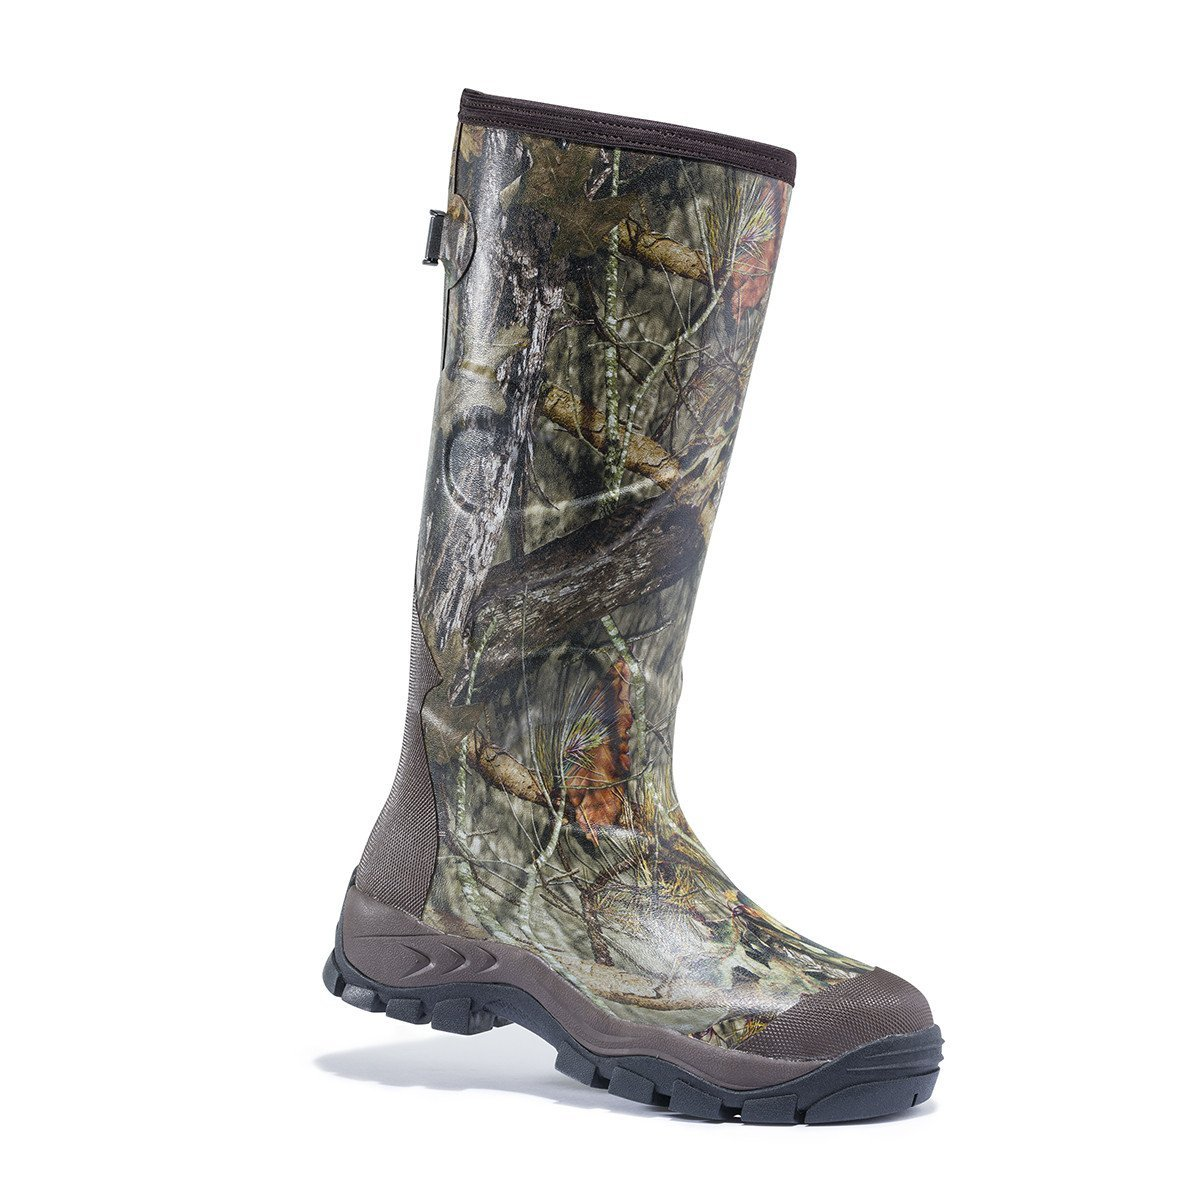 Browning Men's 17'' X-Vantage 800g Rubber Boot | Mossy Oak Country | Size 11